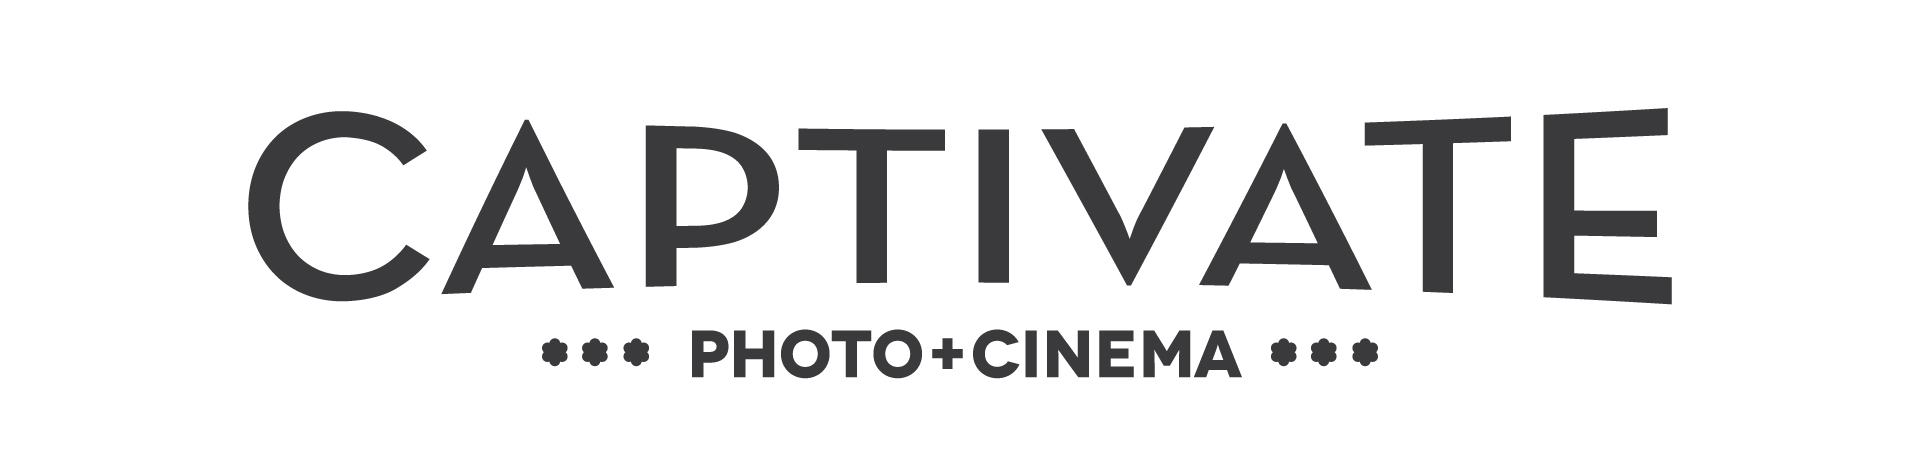 Captivate Photo+Cinema Ltd.